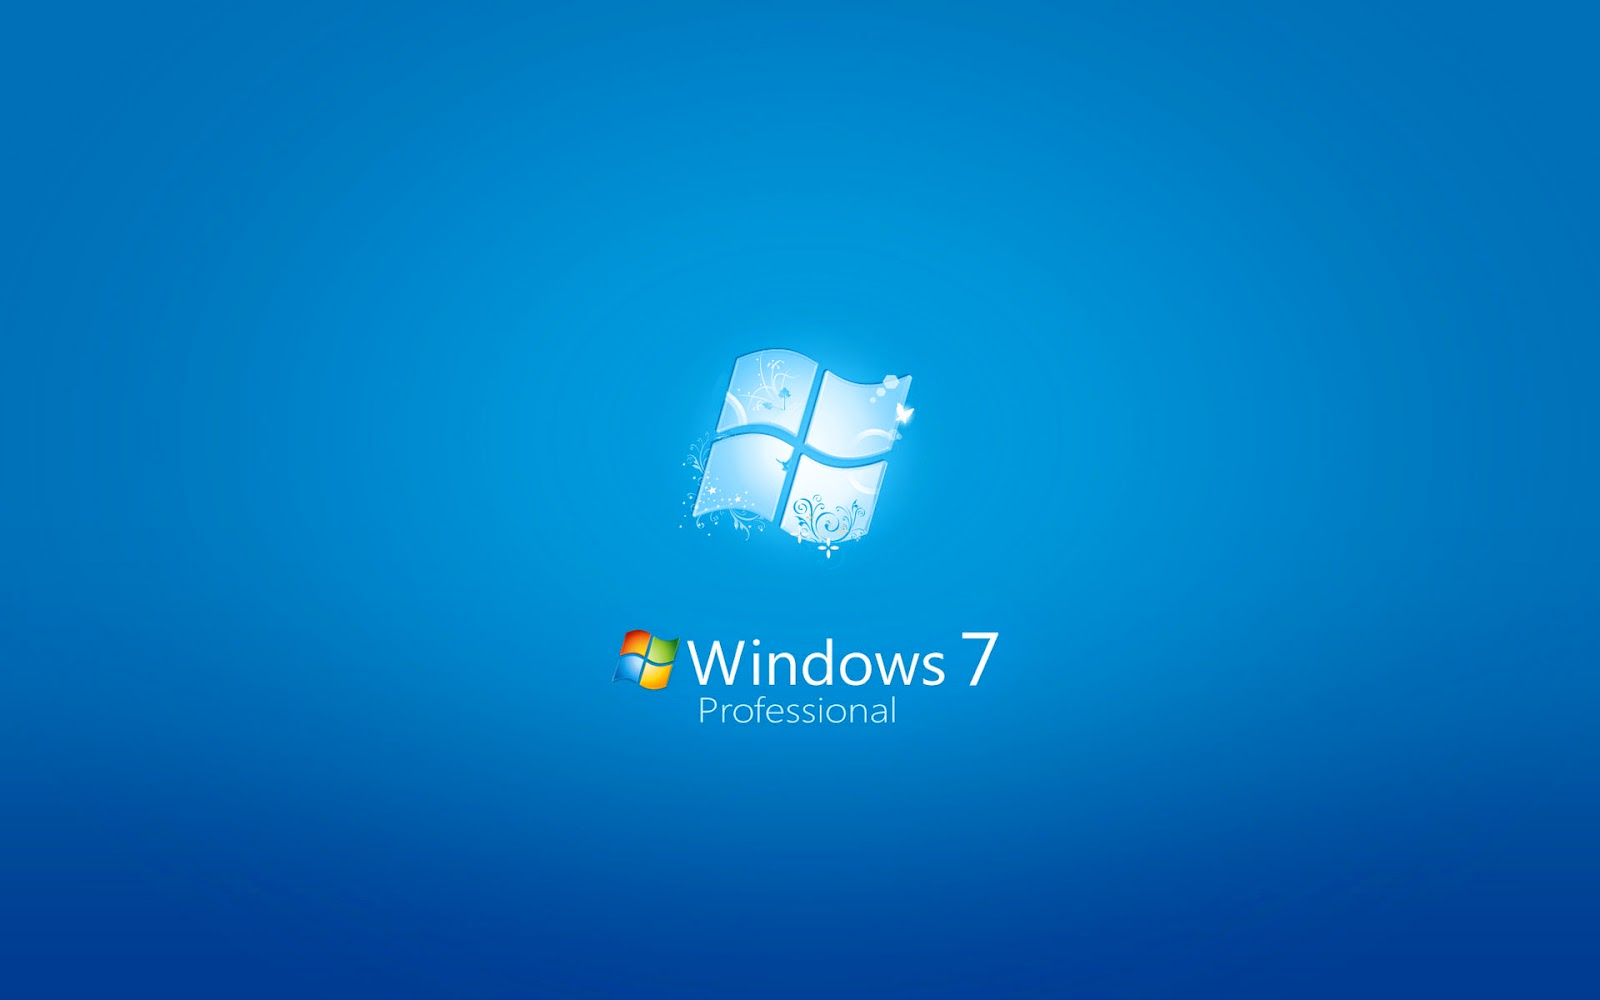 Download windows 7 live wallpapers gallery - Windows 7 love wallpapers ...